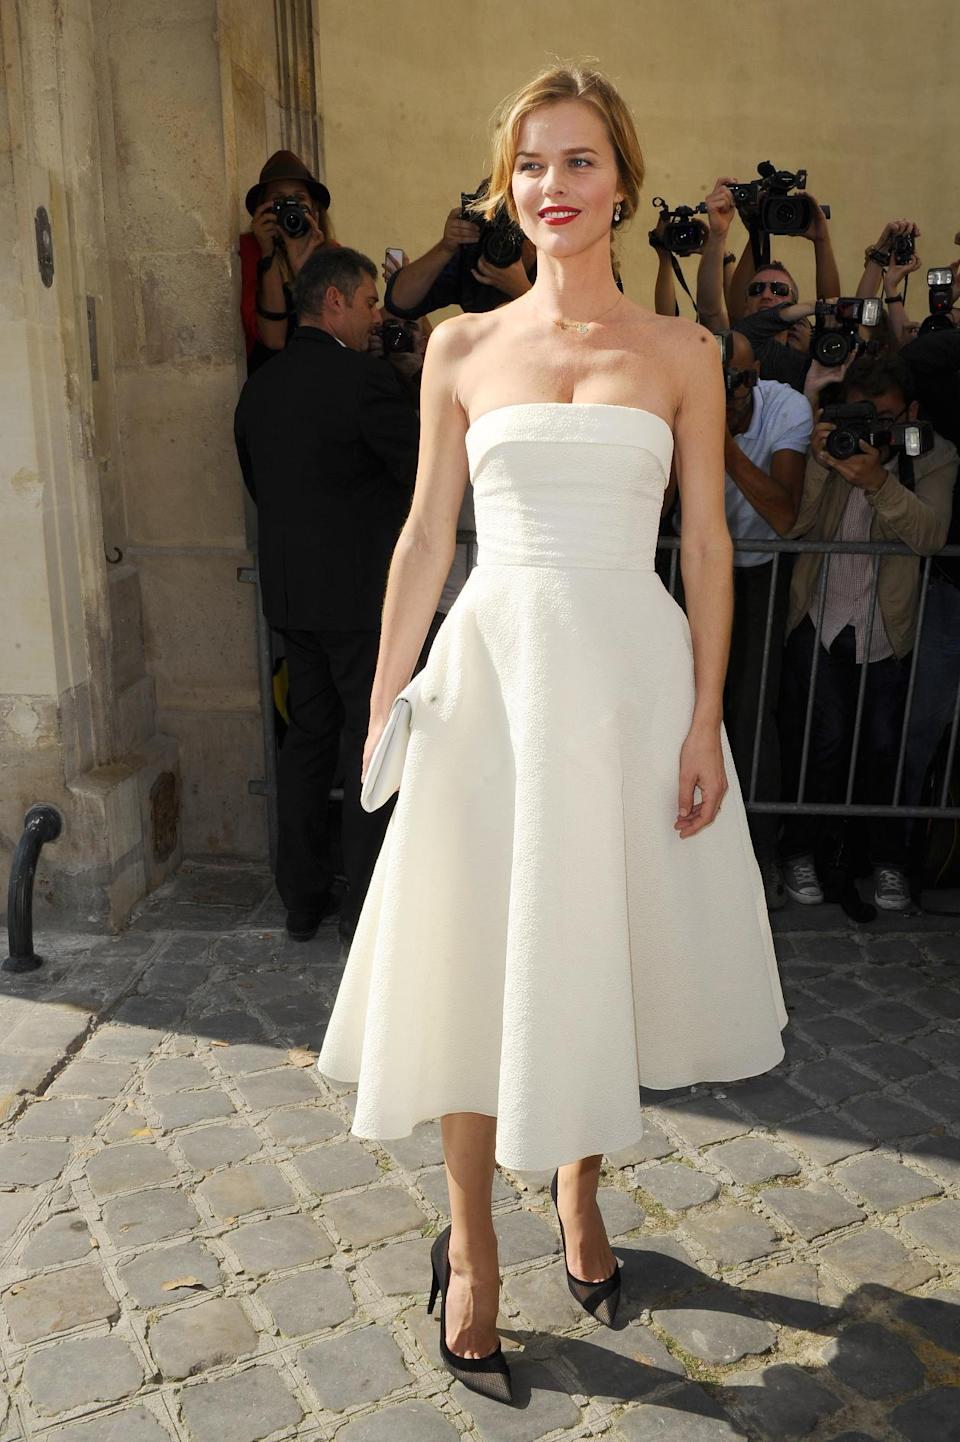 Eva Herzigova arrives to attend Christian Dior's ready-to-wear Spring/Summer 2014 fashion collection, presented Friday, Sept. 27, 2013 in Paris. (AP Photo/Zacharie Scheurer)